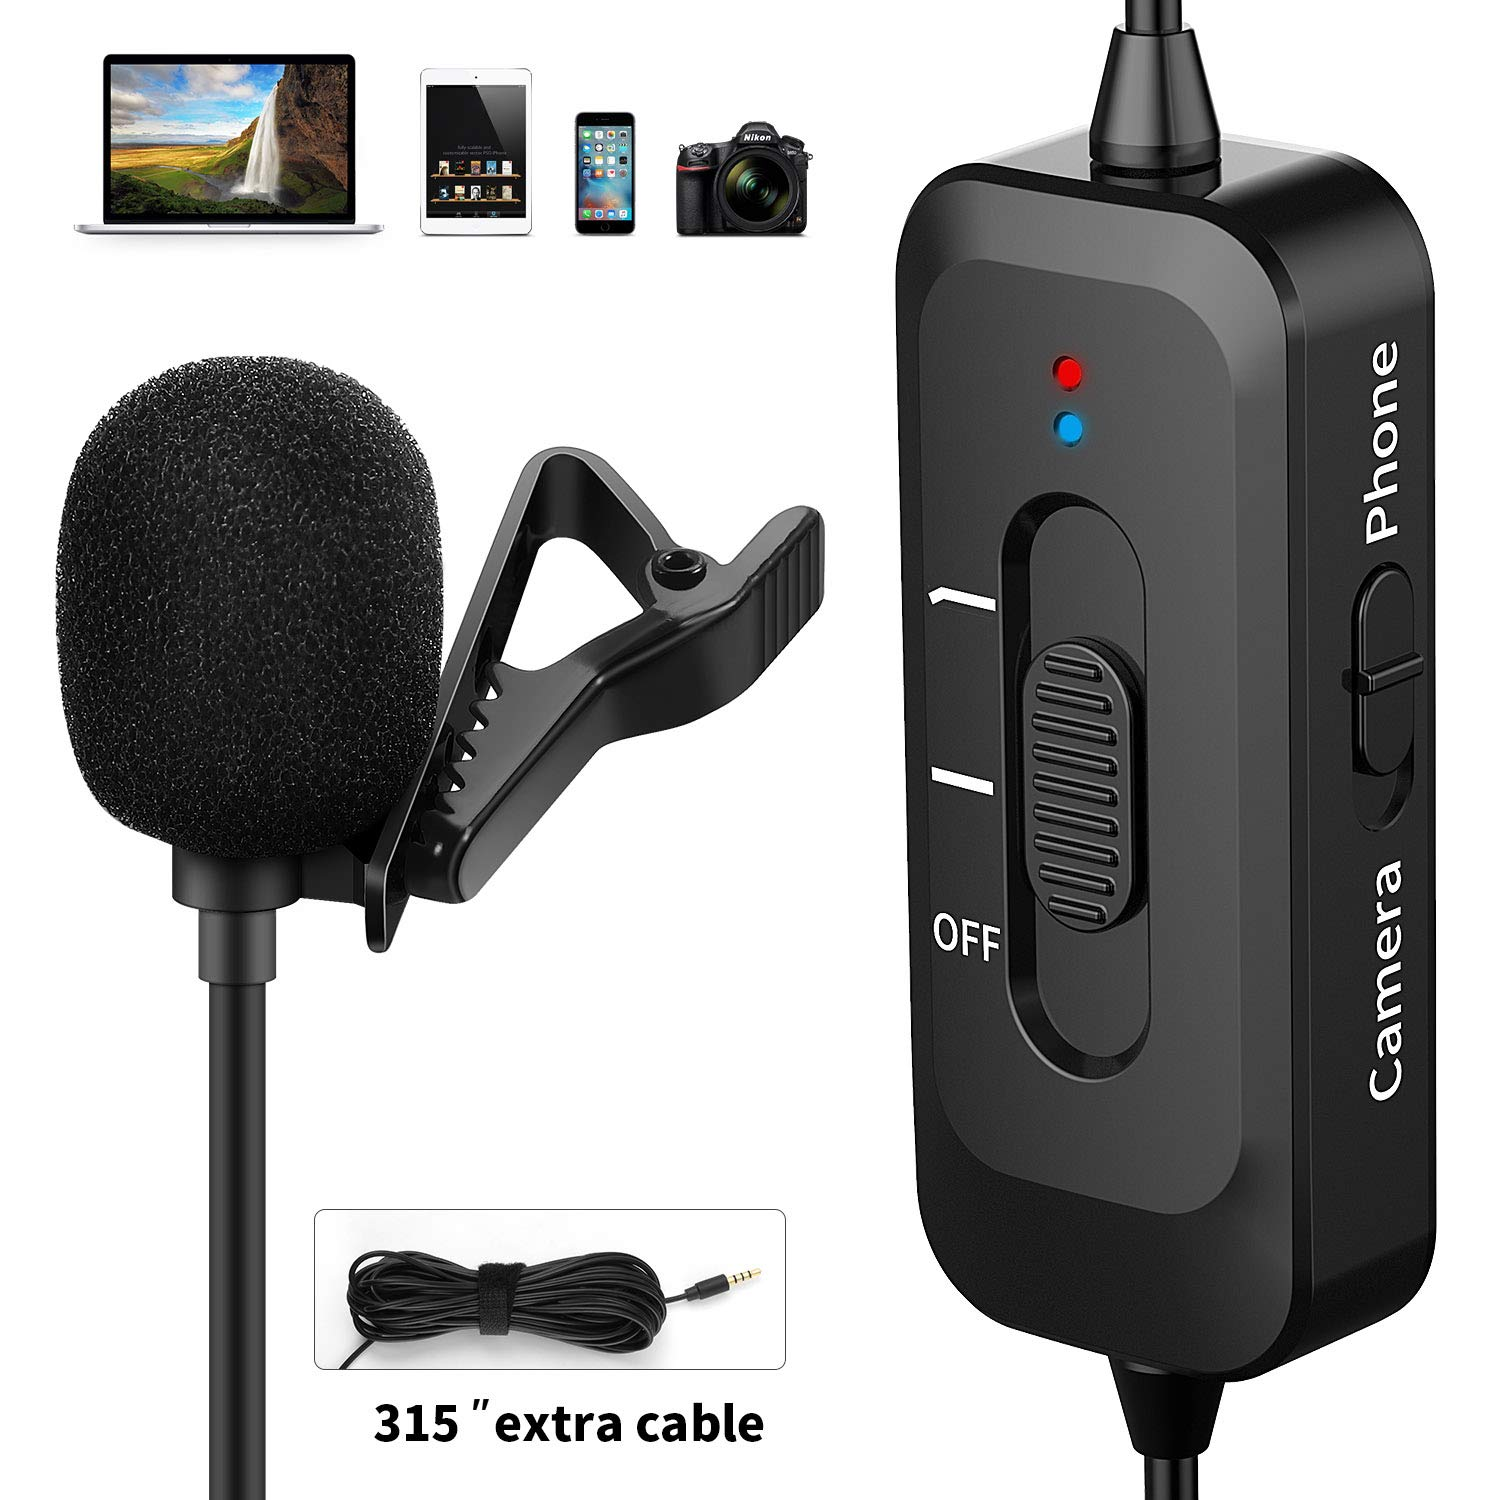 Professional Lavalier Microphone for iPhone/Camera/PC/Android, Lapel Mic with USB Charging and Noise Cancellation System for Video Recording, DSLR, Youtube, Podcast, Interview, Vlogging by Shotory